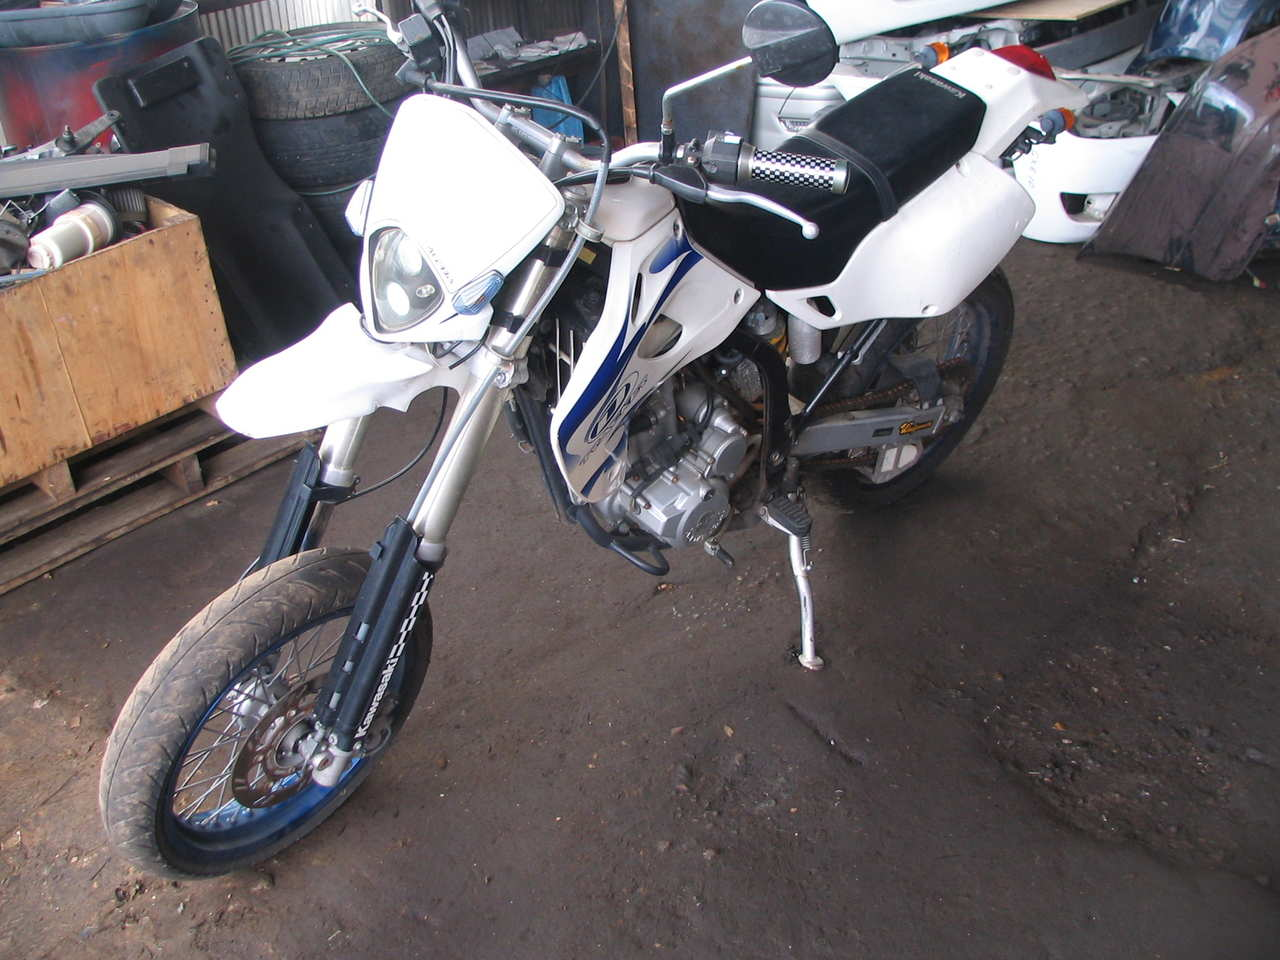 2002 Kawasaki D Tracker Wallpapers 03l For Sale New Photo 4 Enlarge 1280x960